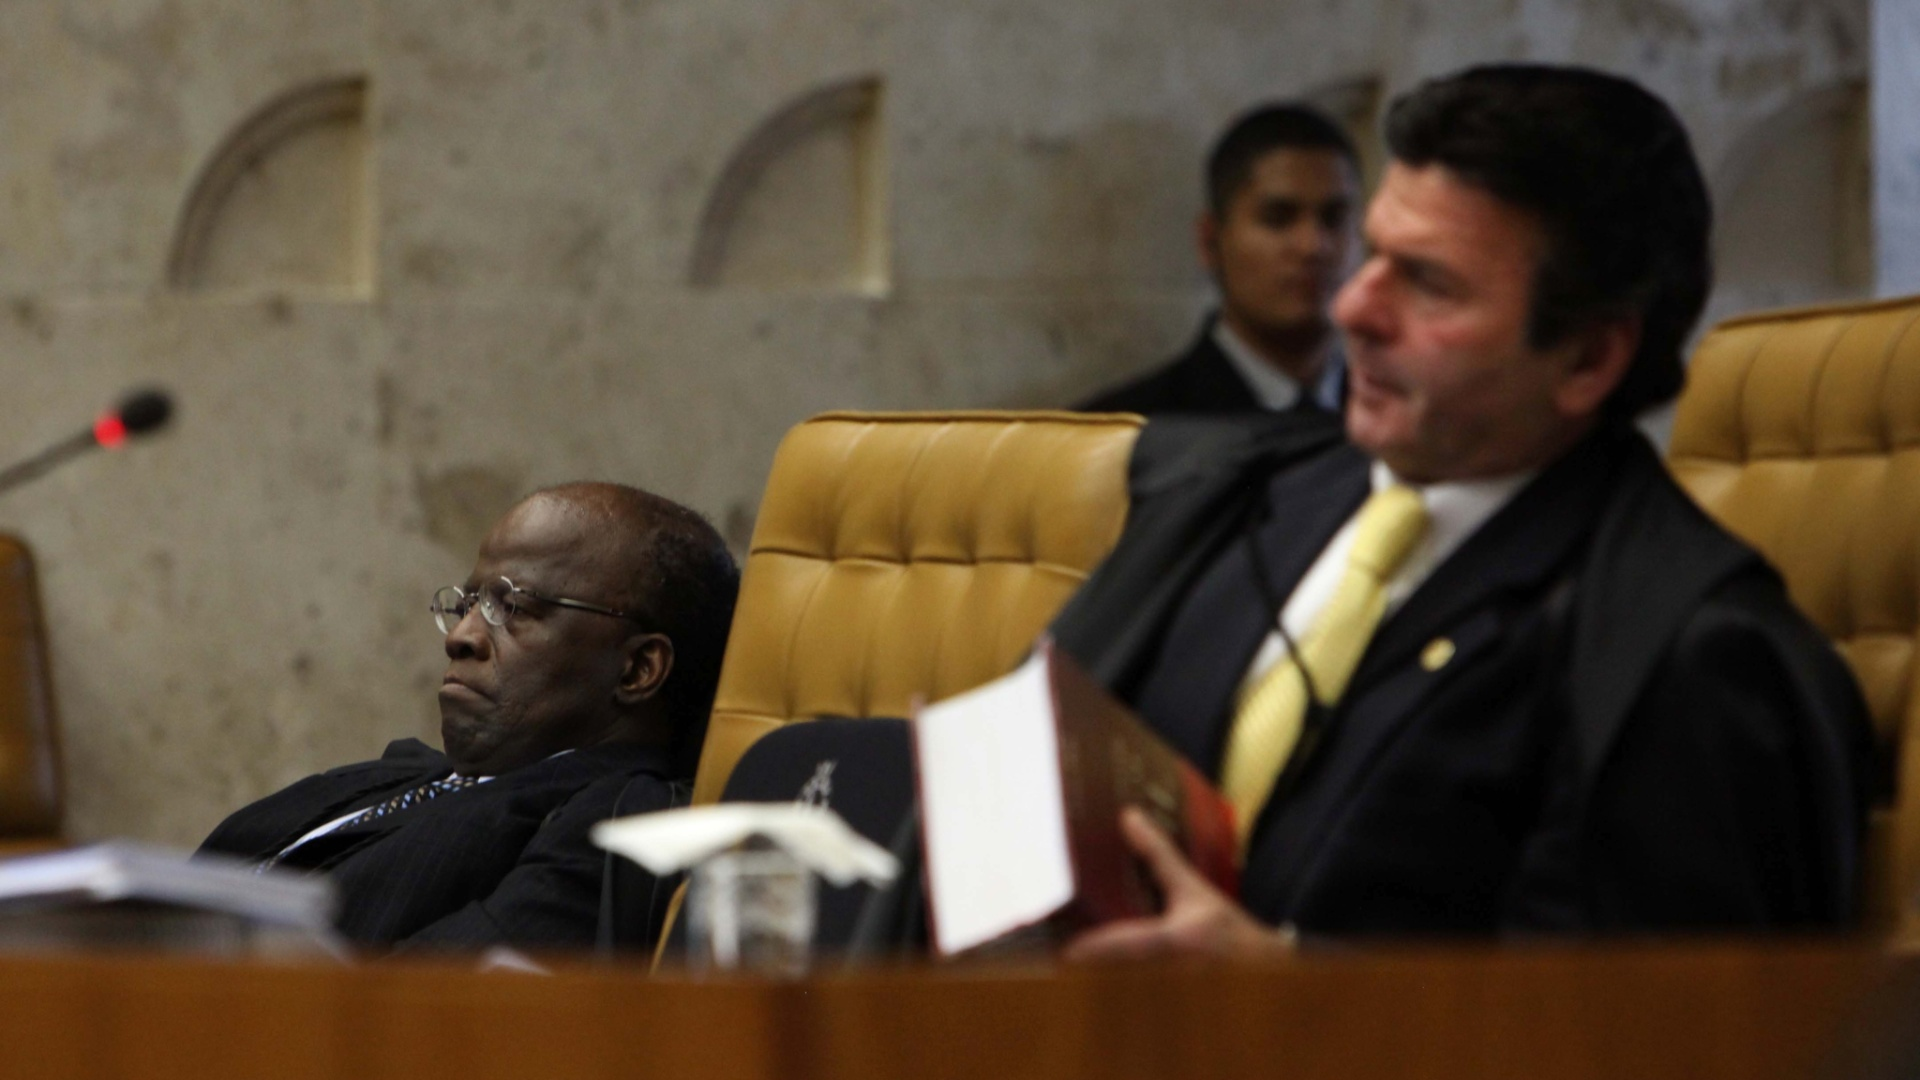 8.nov.2012 - Ministros Joaquim Barbosa ( esq.) e Luiz Fux ( dir.) em sesso de julgamento do mensalo no Supremo Tribunal Federal 